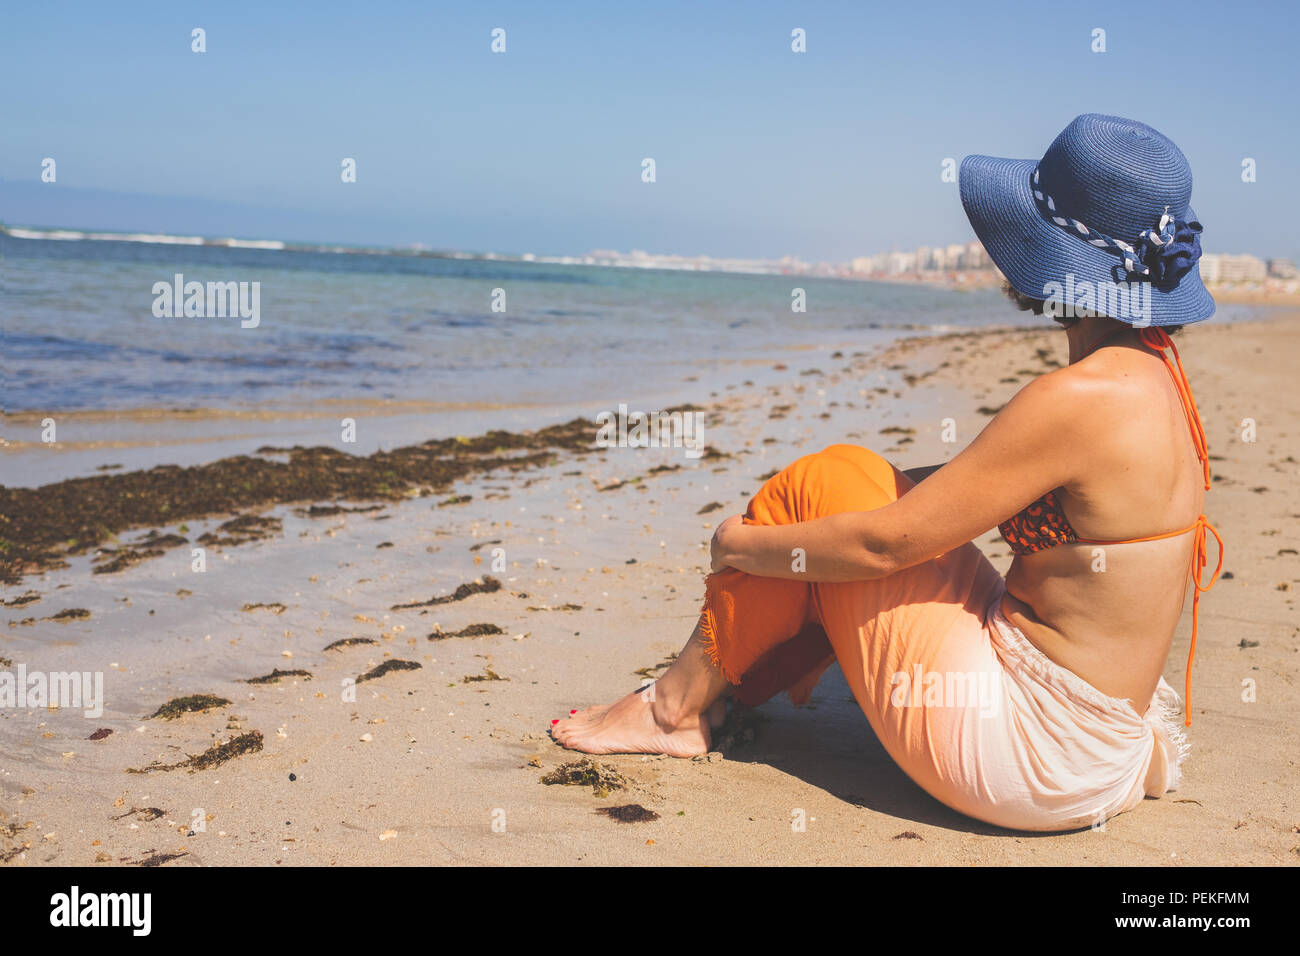 Woman in bikini is on vacation sitting on the beach in summer. - Stock Image